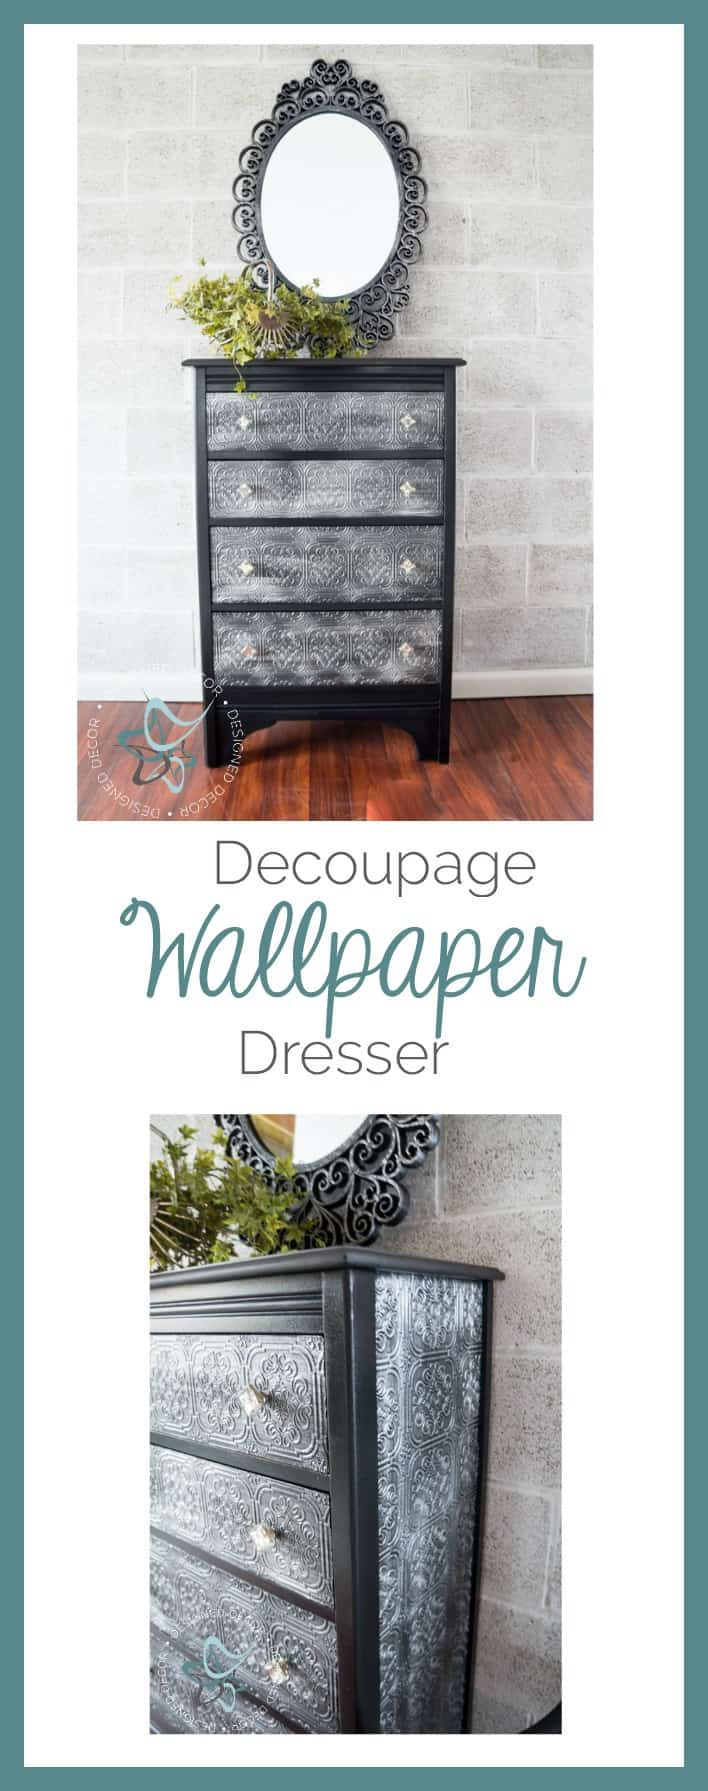 decoupage wallpaper dresser